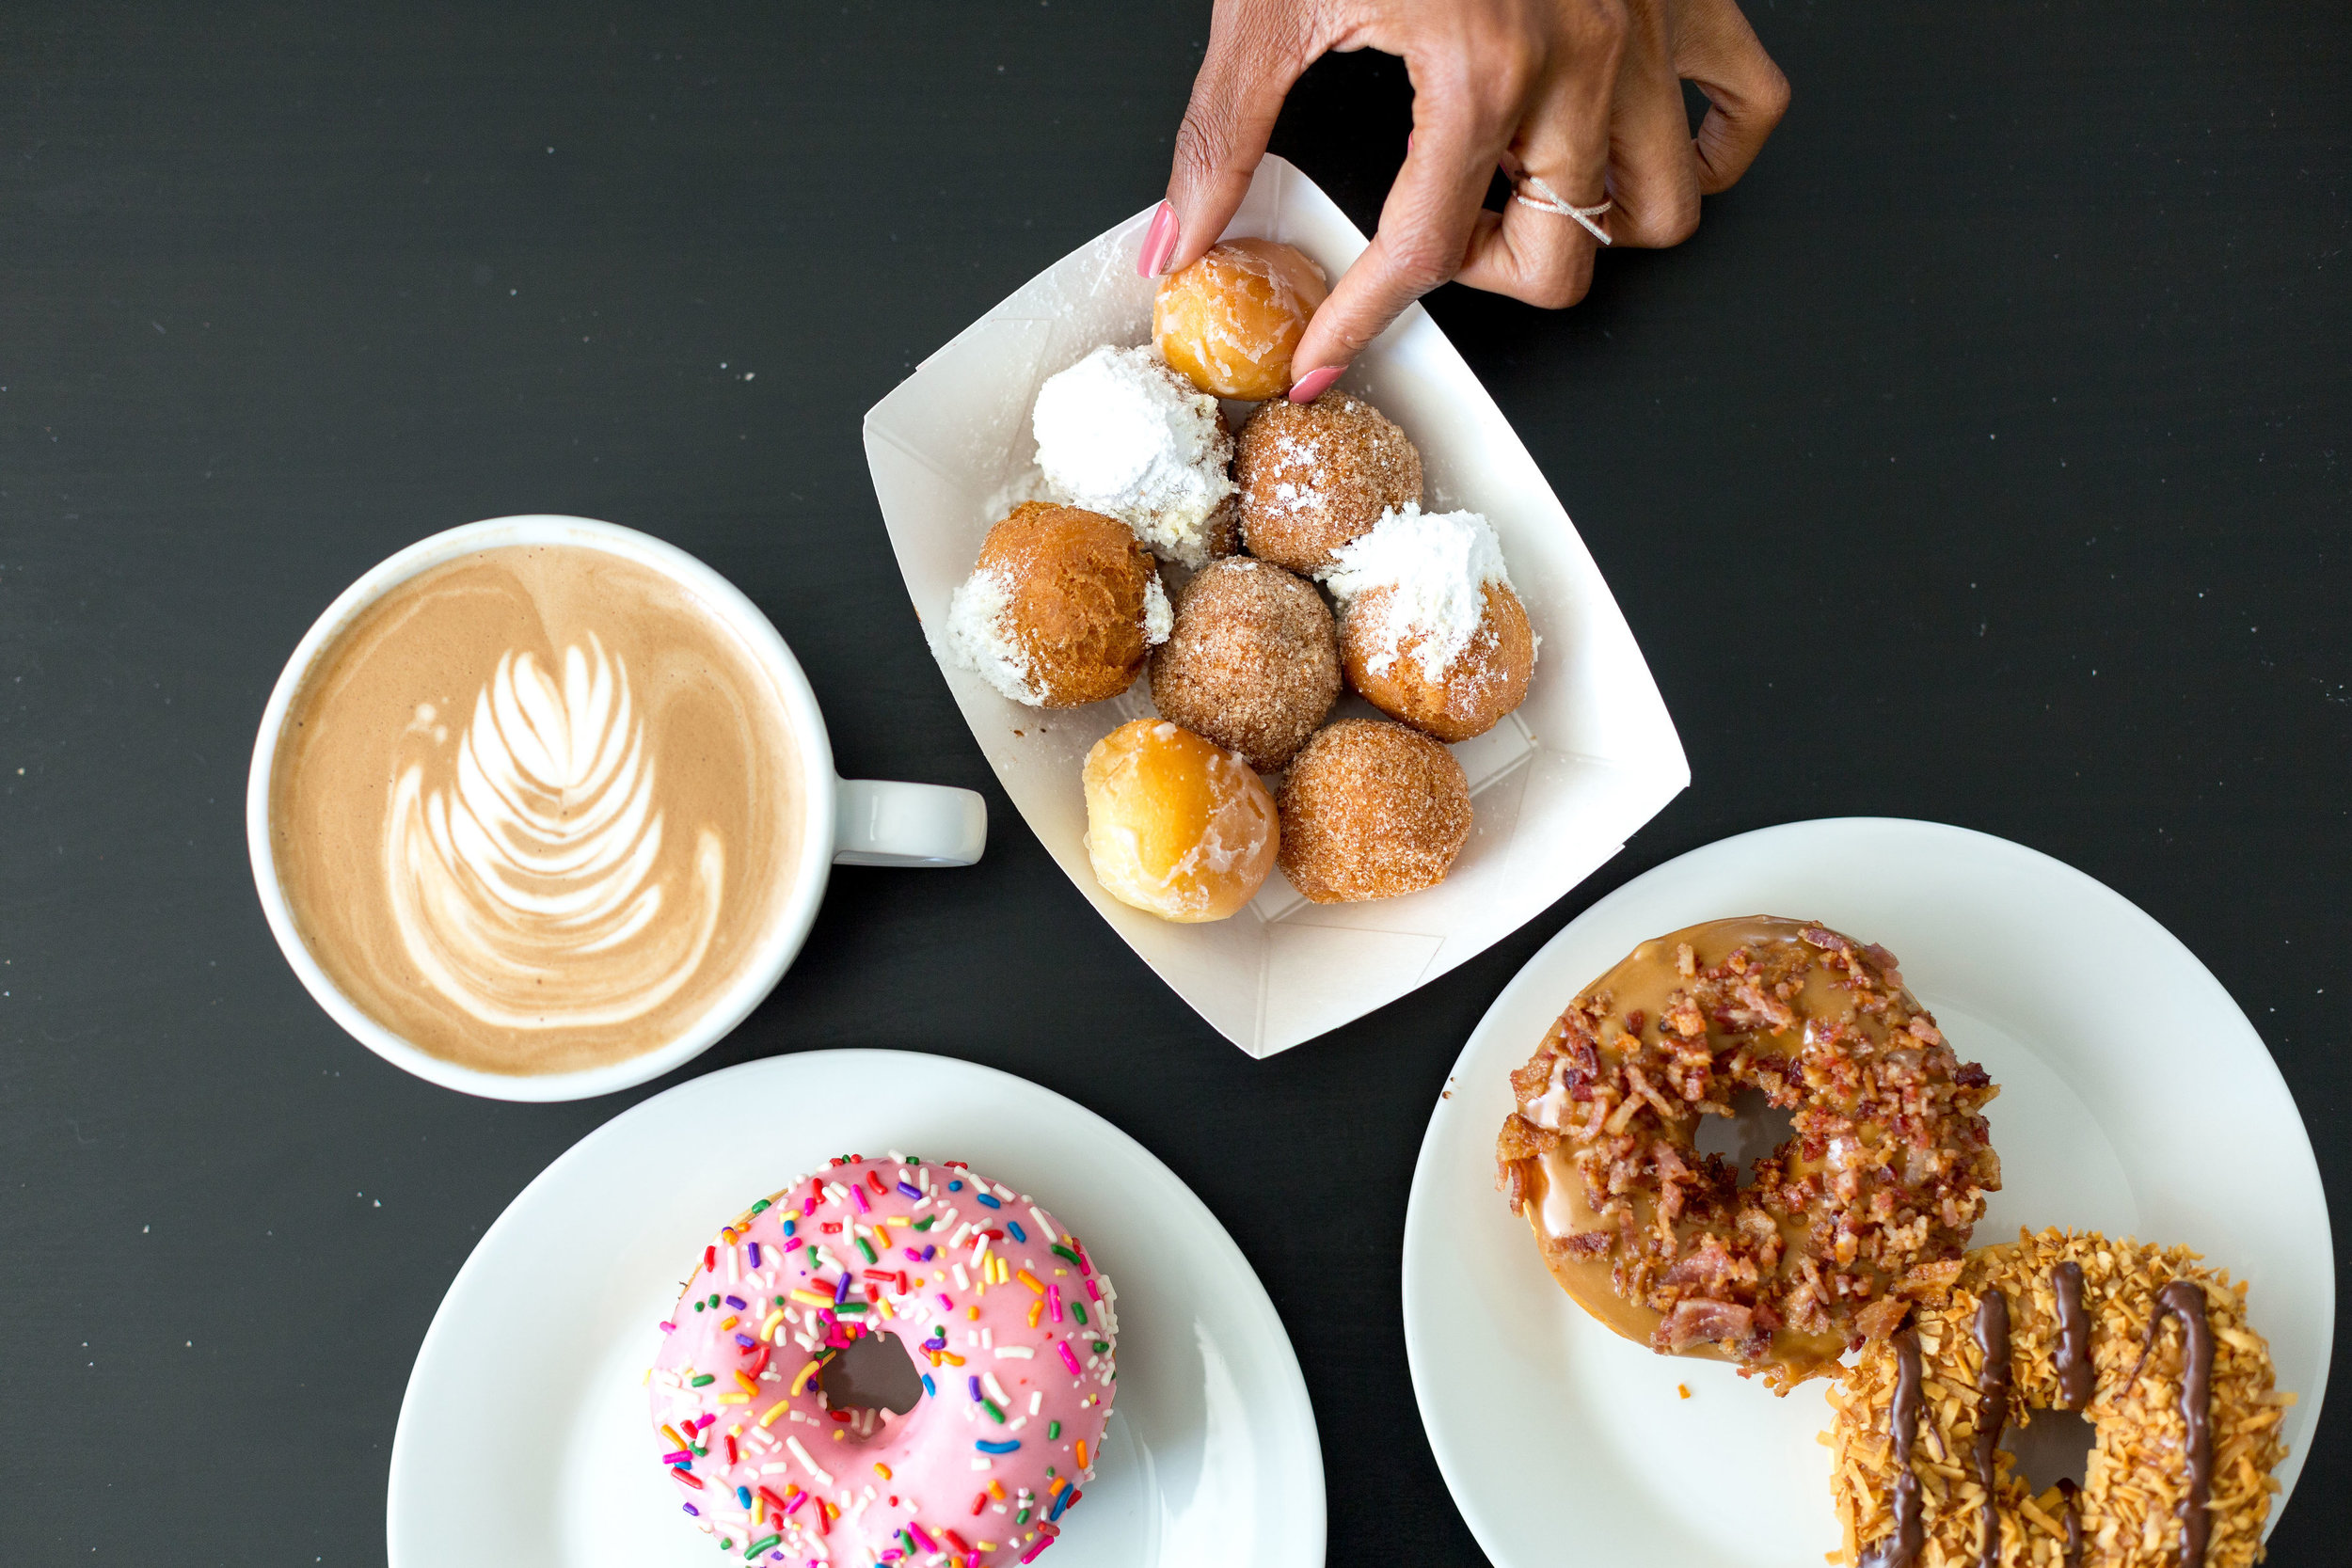 Babe's Doughnuts - pink icing, maple & bacon, samoa donuts. Donut holes are glazed, cinnamon sugar & powdered